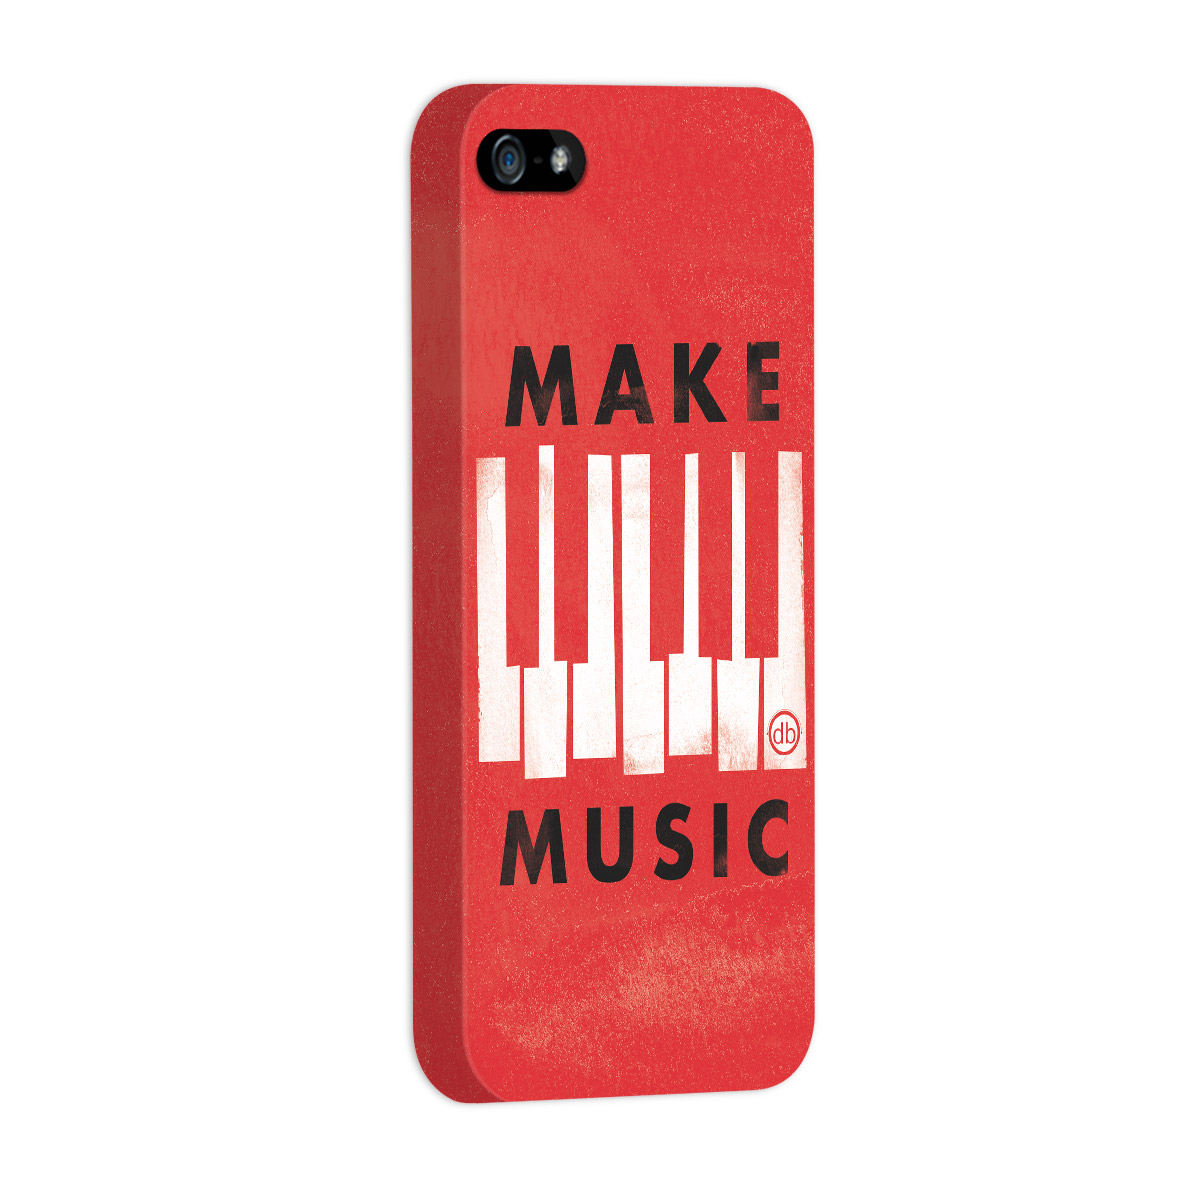 Capa para iPhone 5/5S Dudu Borges Make Music